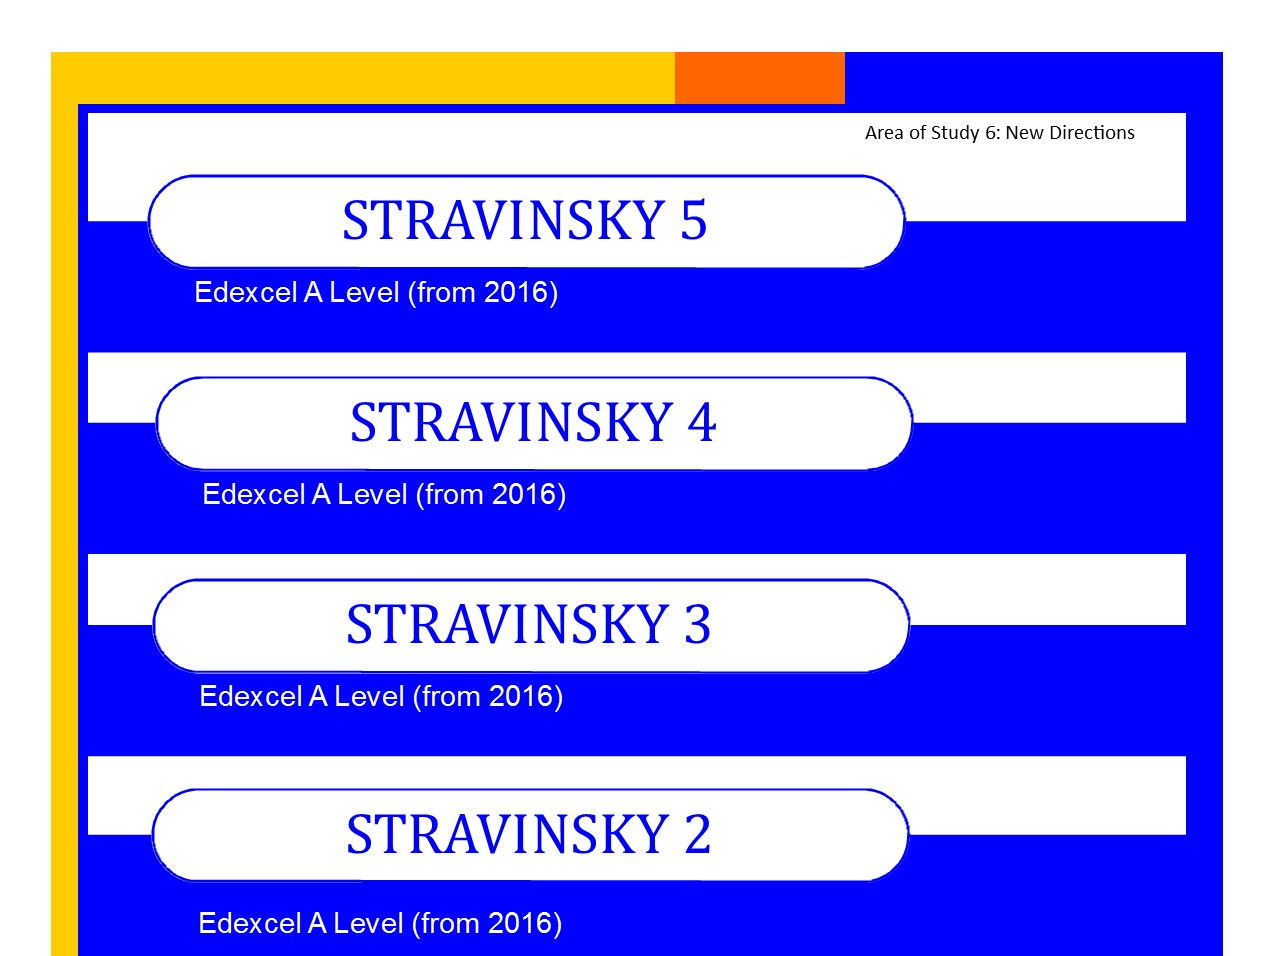 Bundle of Edexcel Music A level (from 2016) Stravinsky worksheets 2,3,4 and 5 PLUS Elements of Music summary sheets.